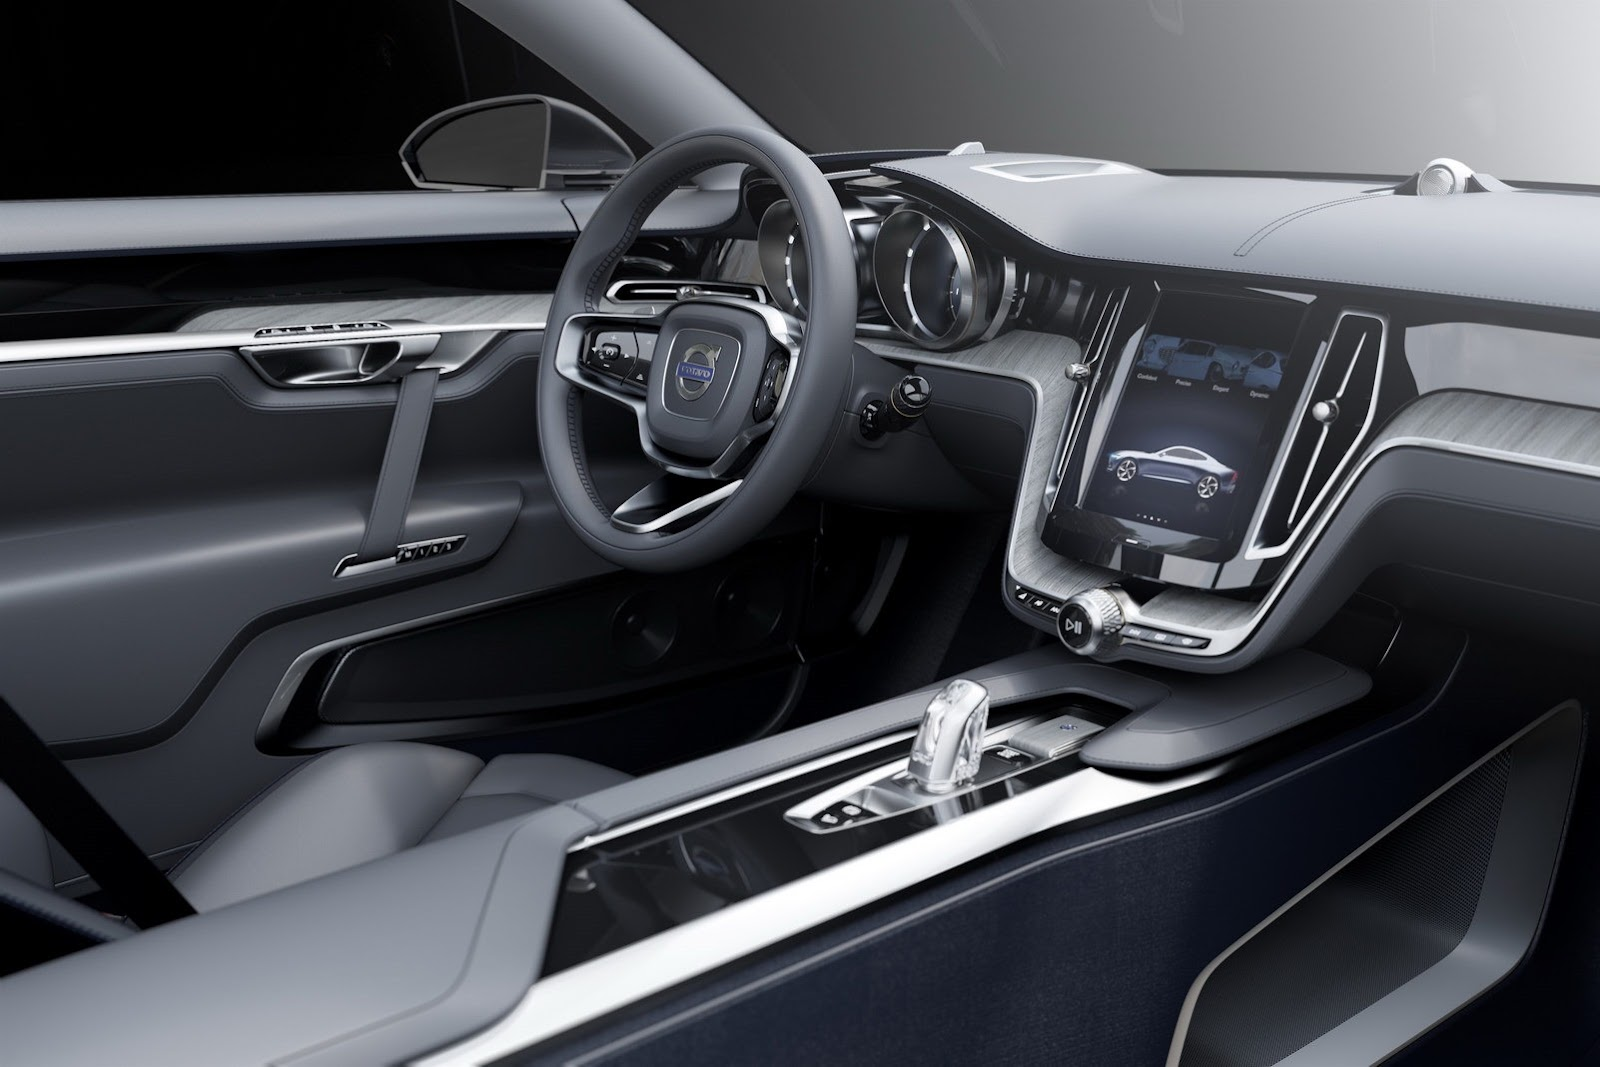 Volvo-Concept-Coupe-56%25255B2%25255D.jpg